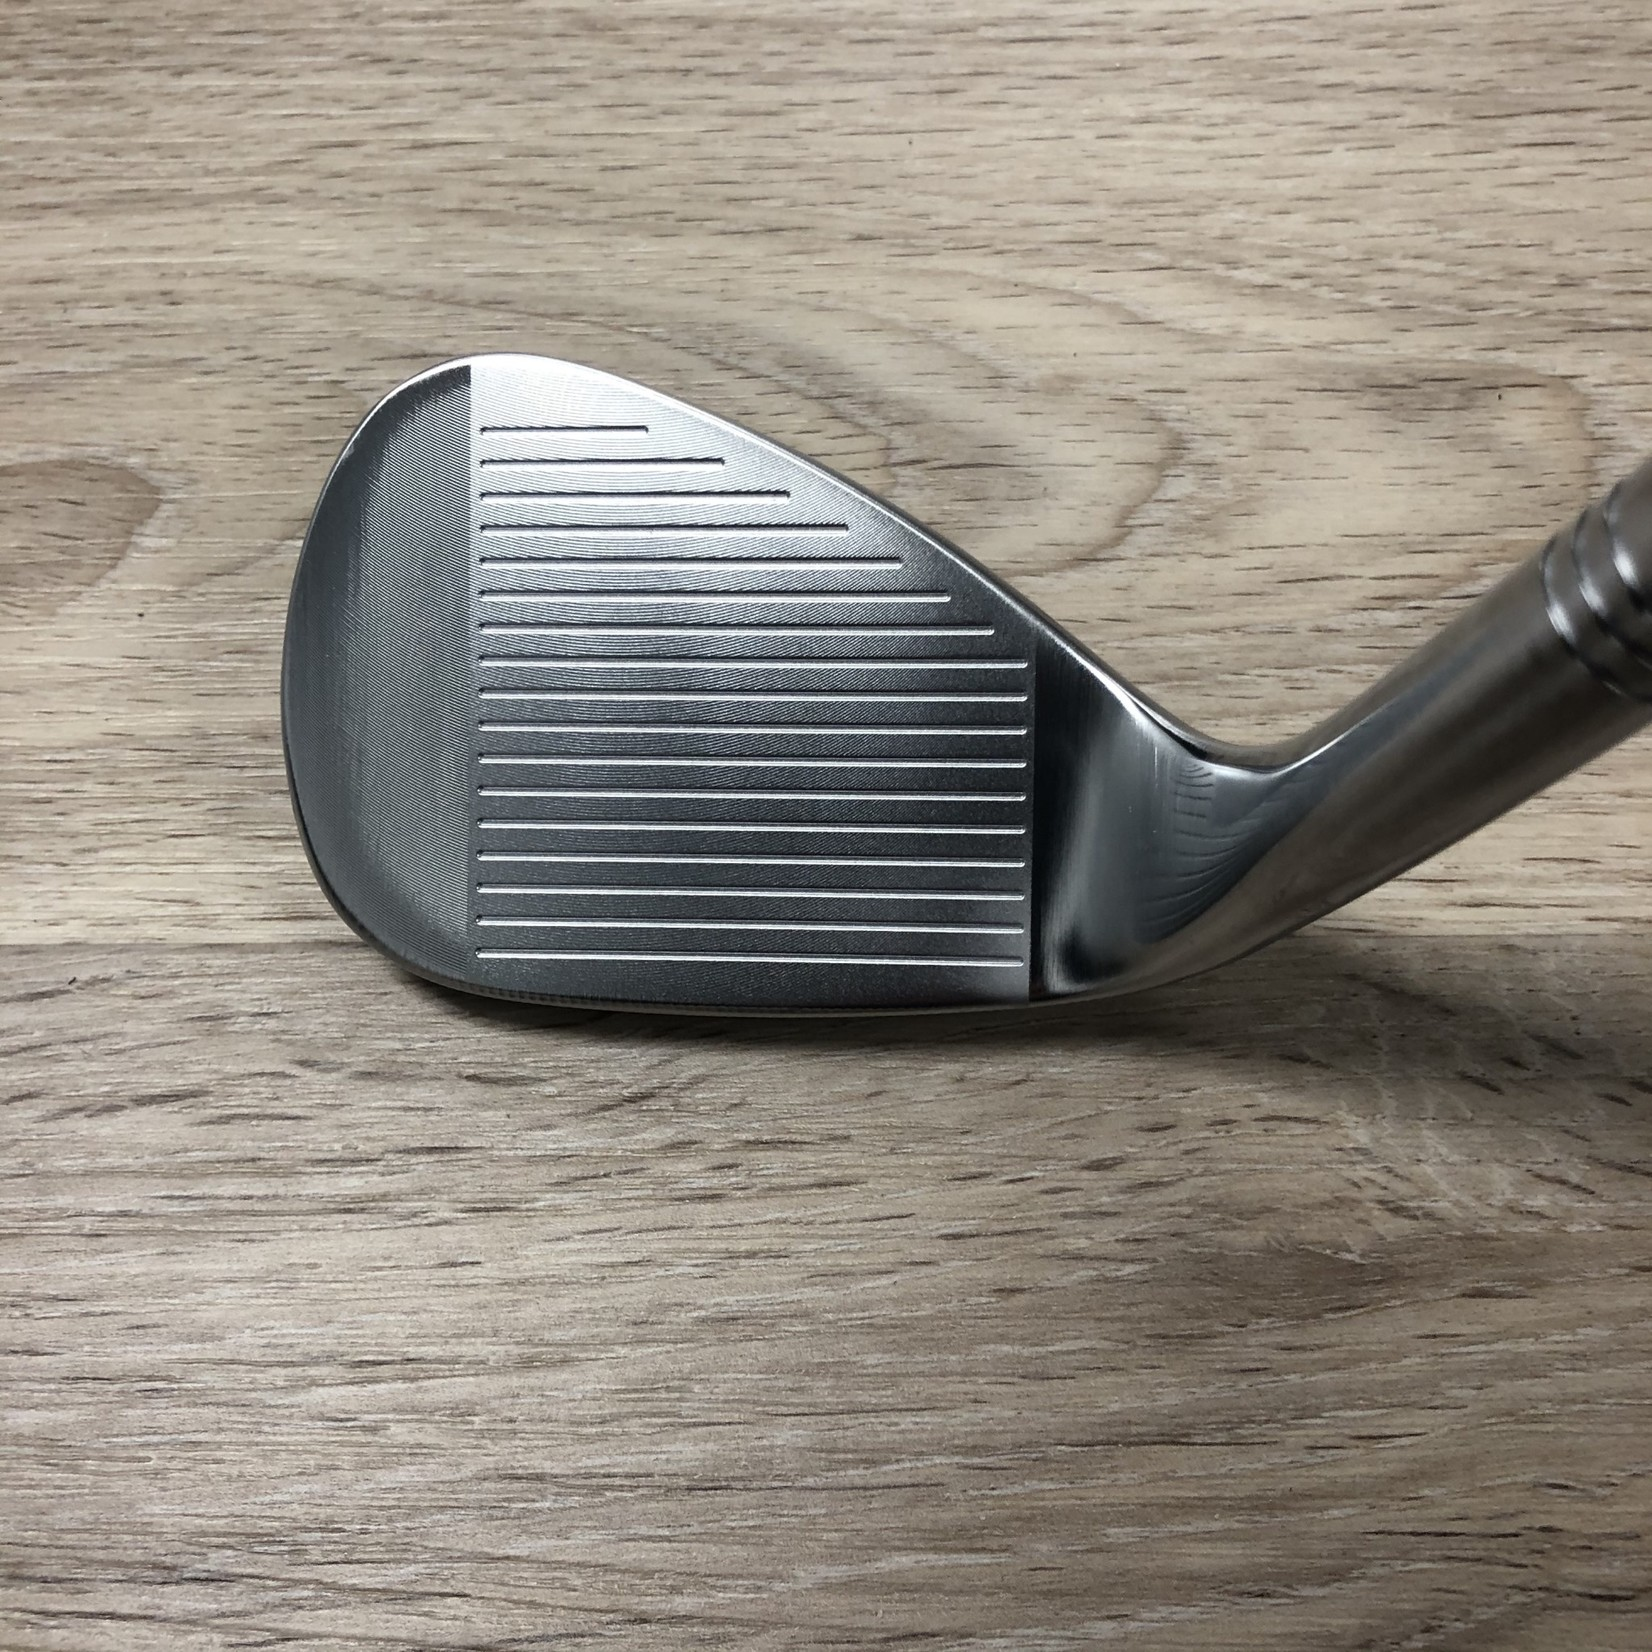 TaylorMade Taylormade Milled Grind Wedge 60* 10* (RH)